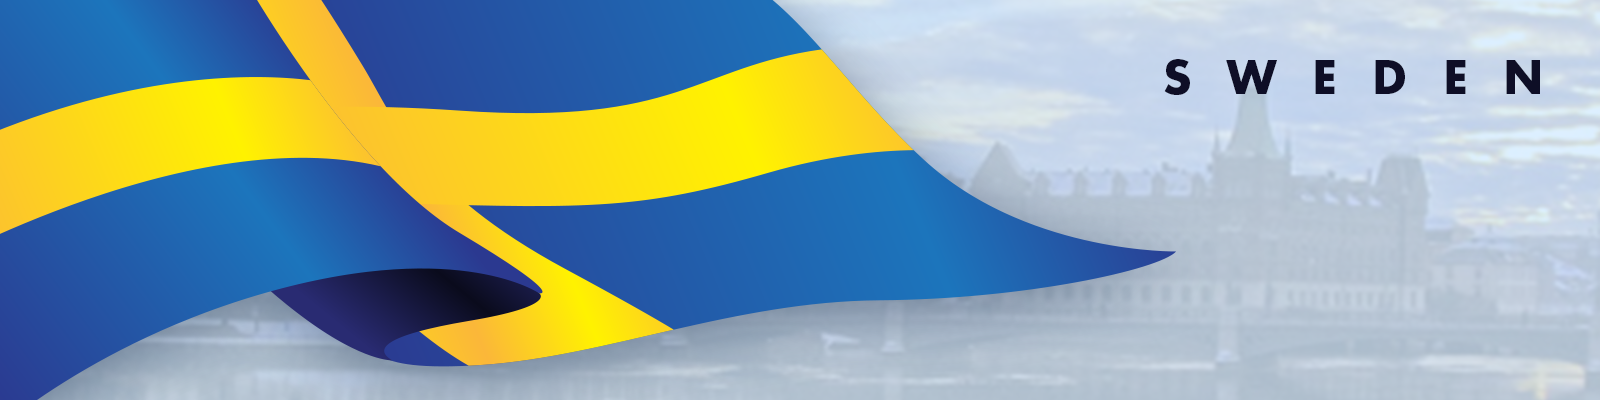 website developers sweden